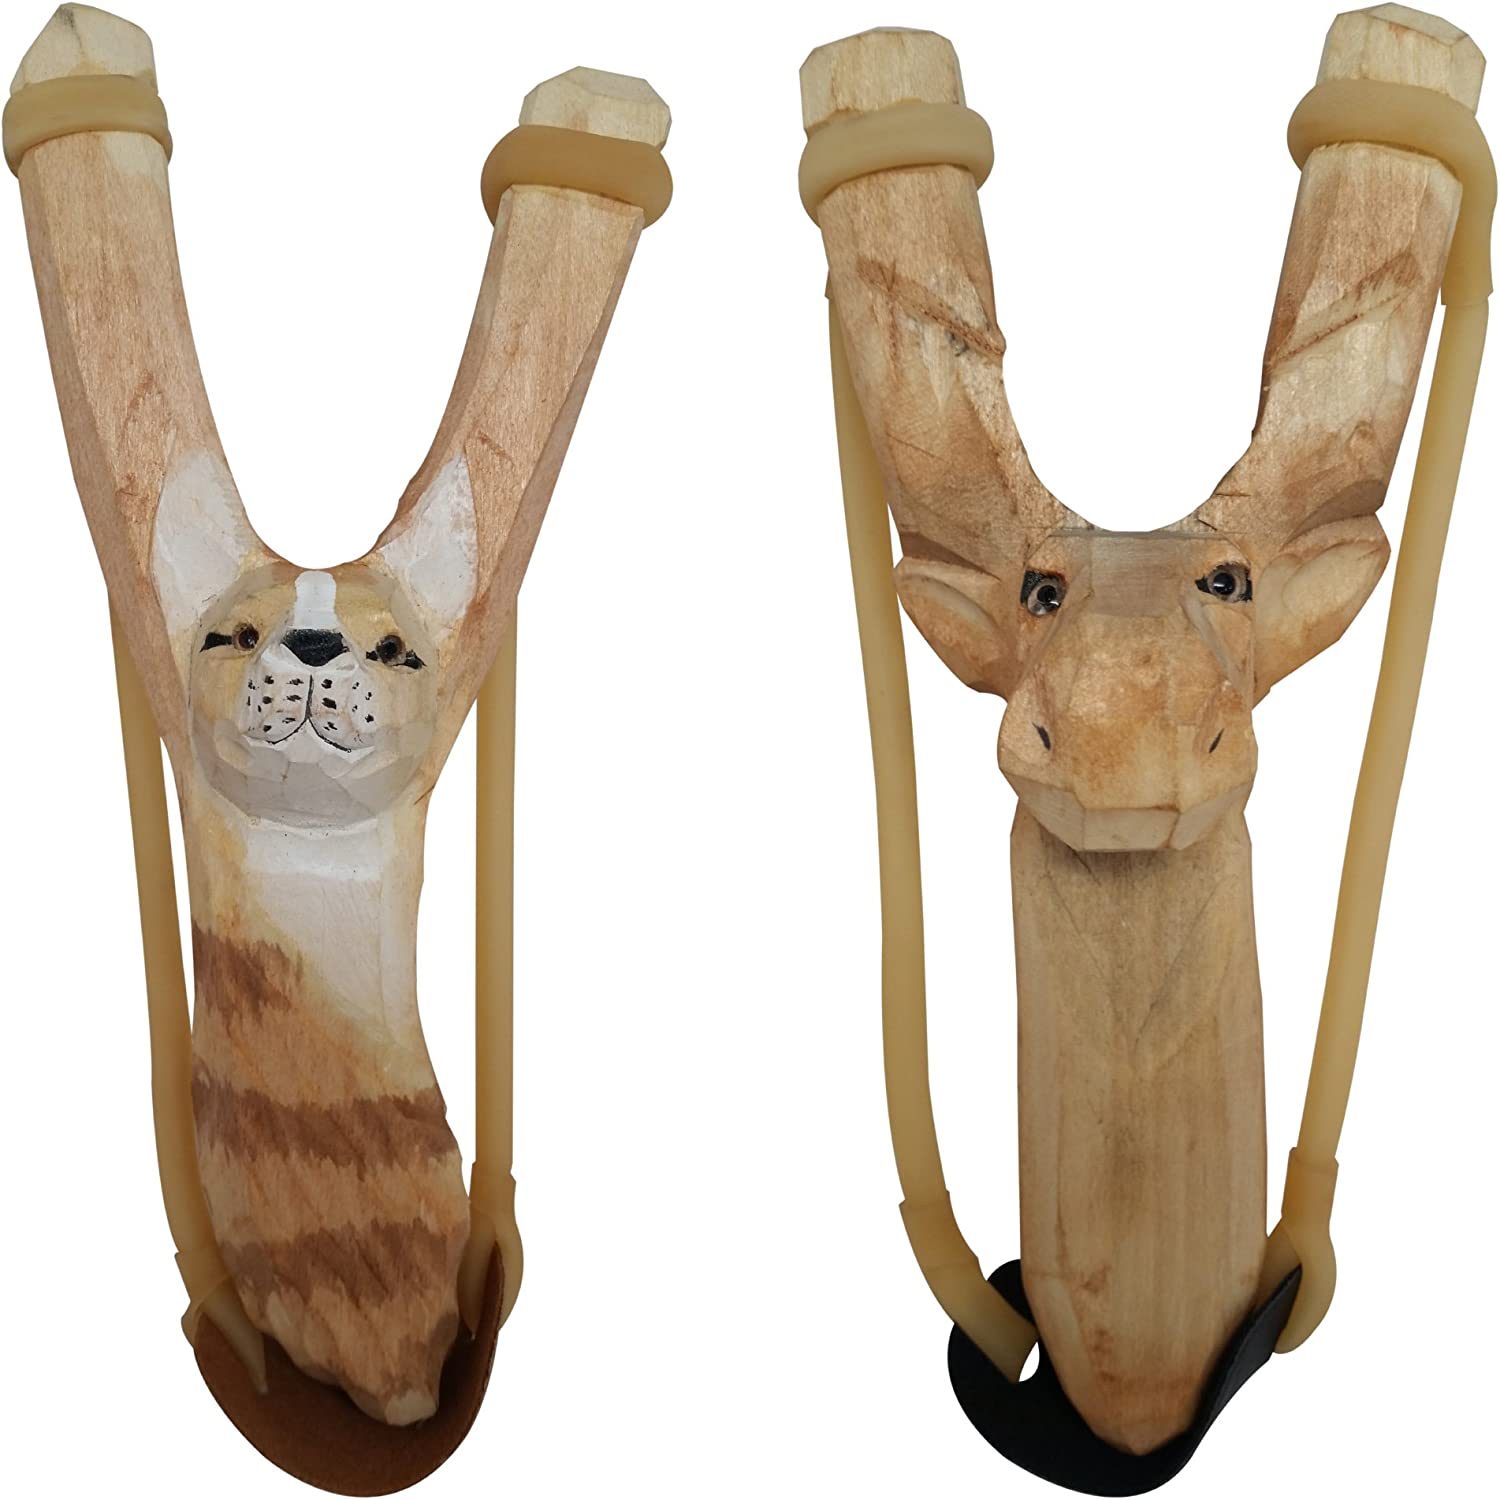 NatureLaunchers 2 Pack - Nature LAUNCHERS - Hand-Carved Wooden Slingshot Lynx and Moose